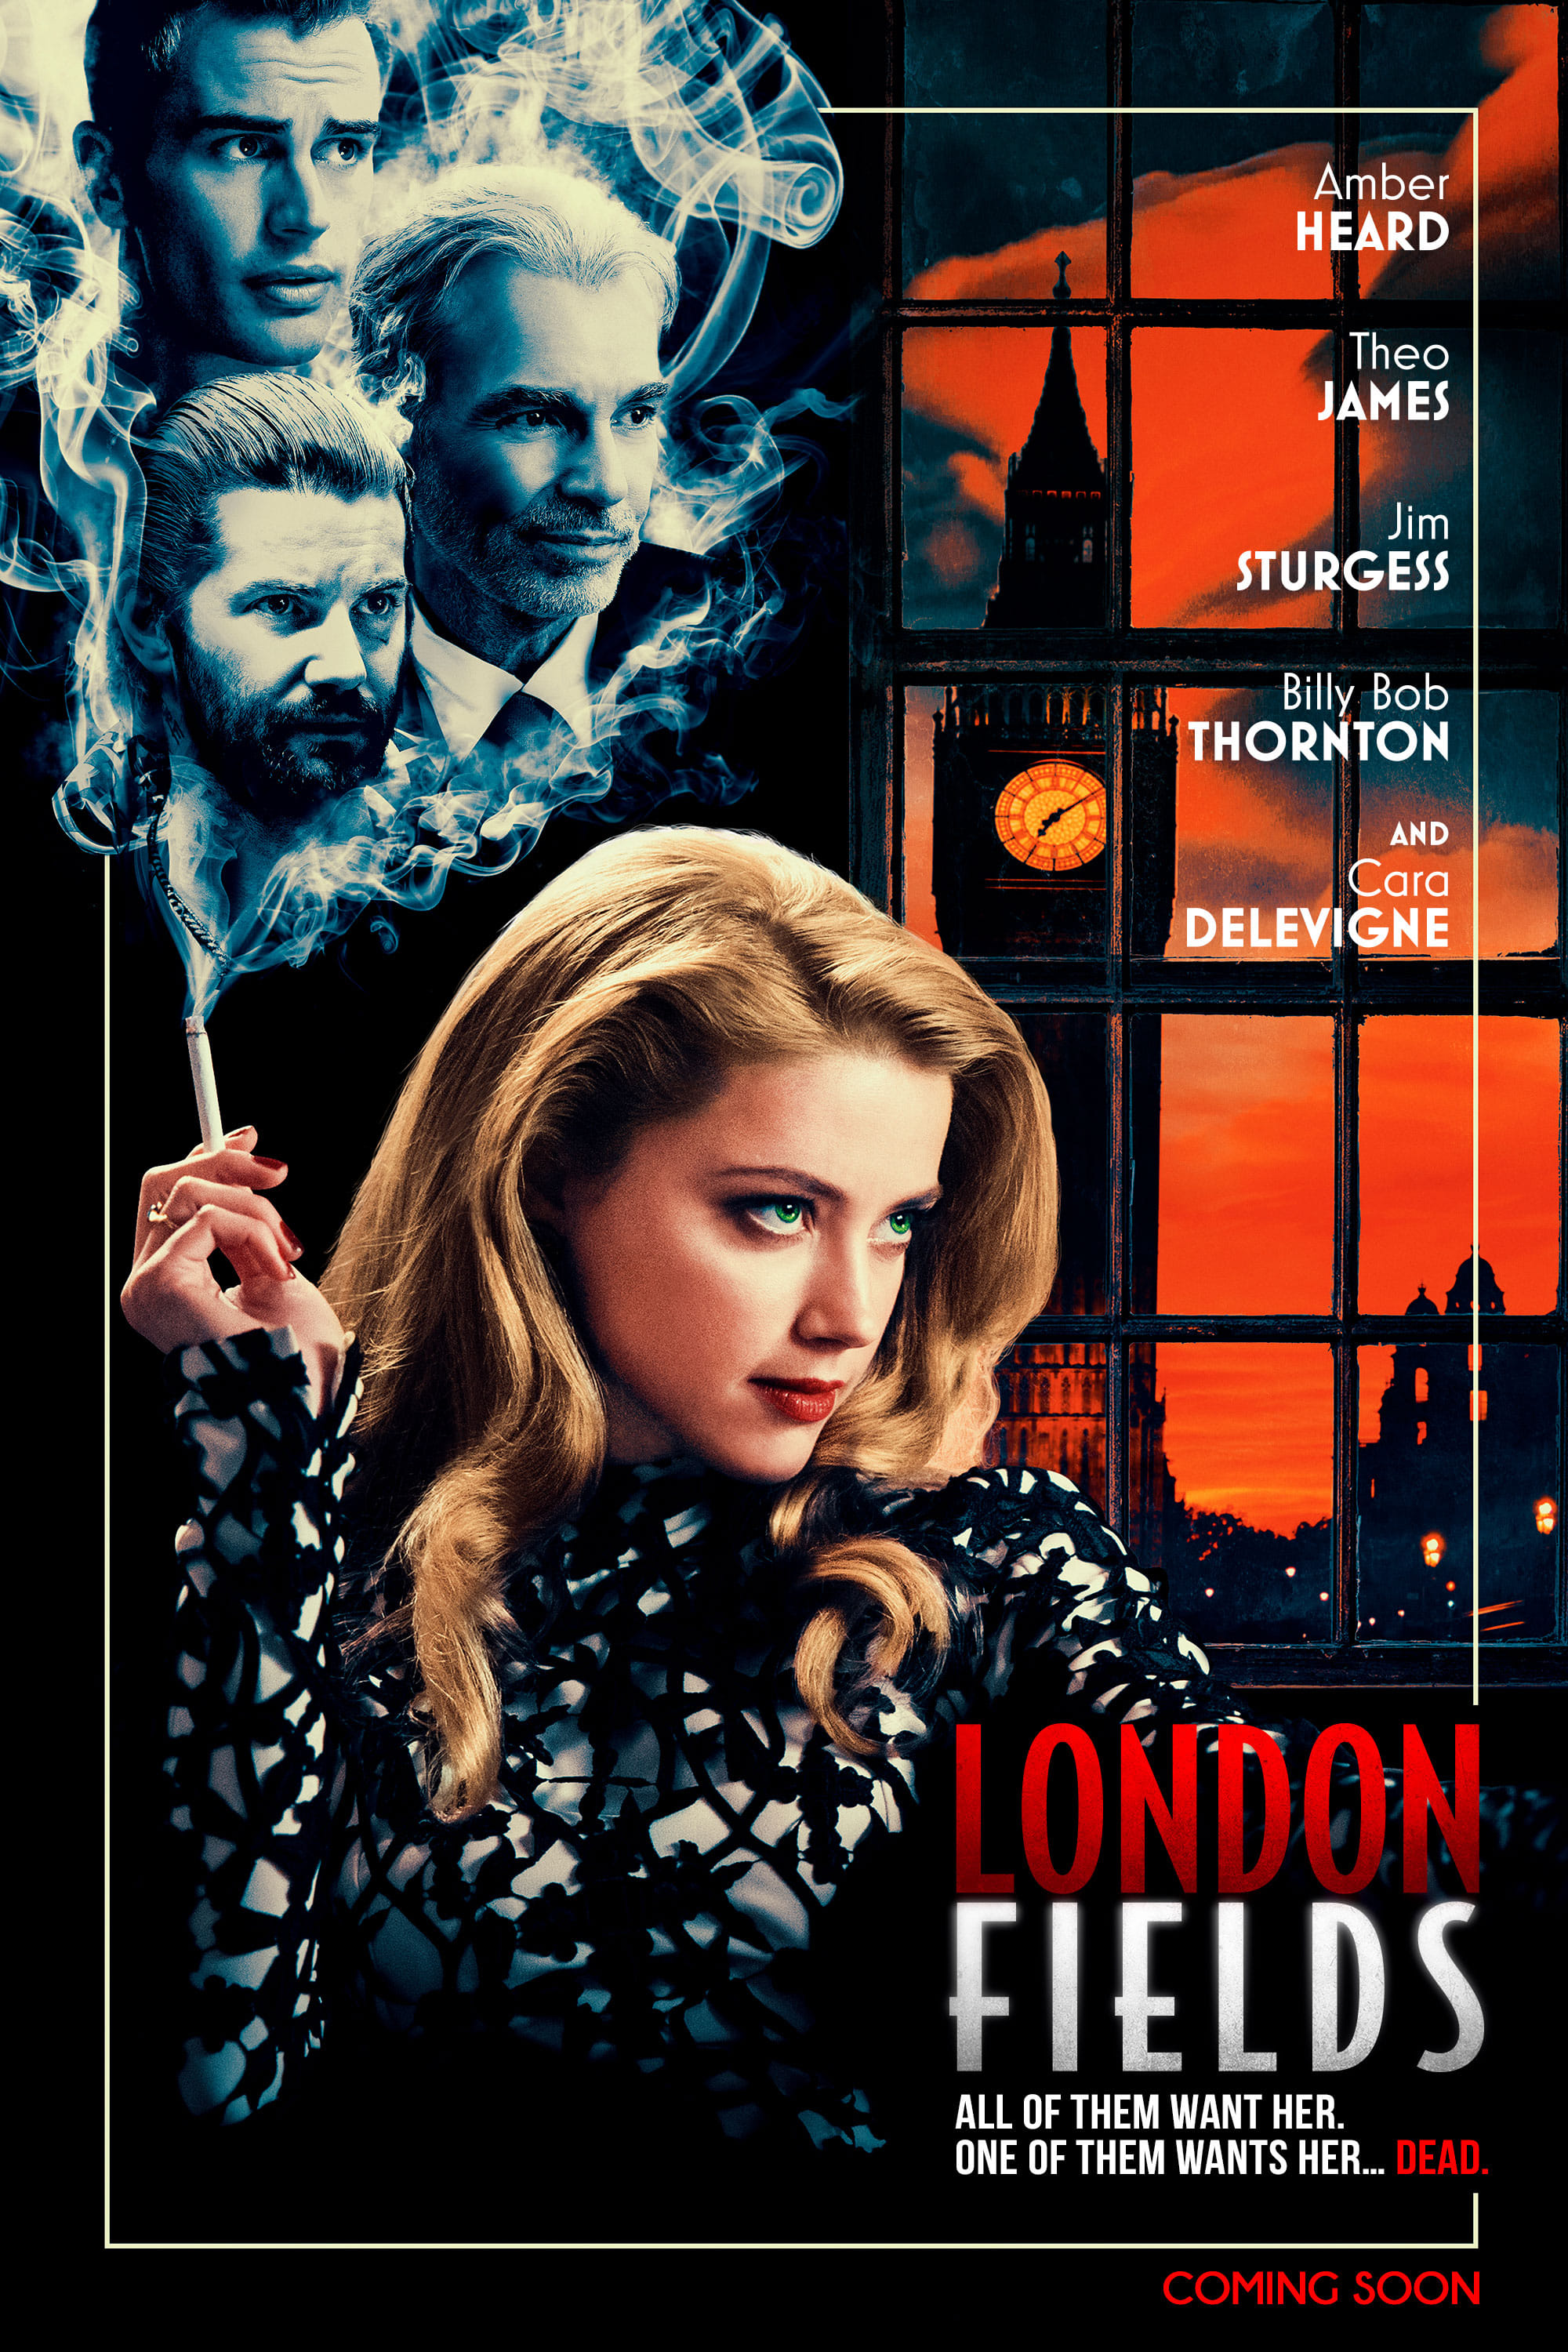 image for London Fields